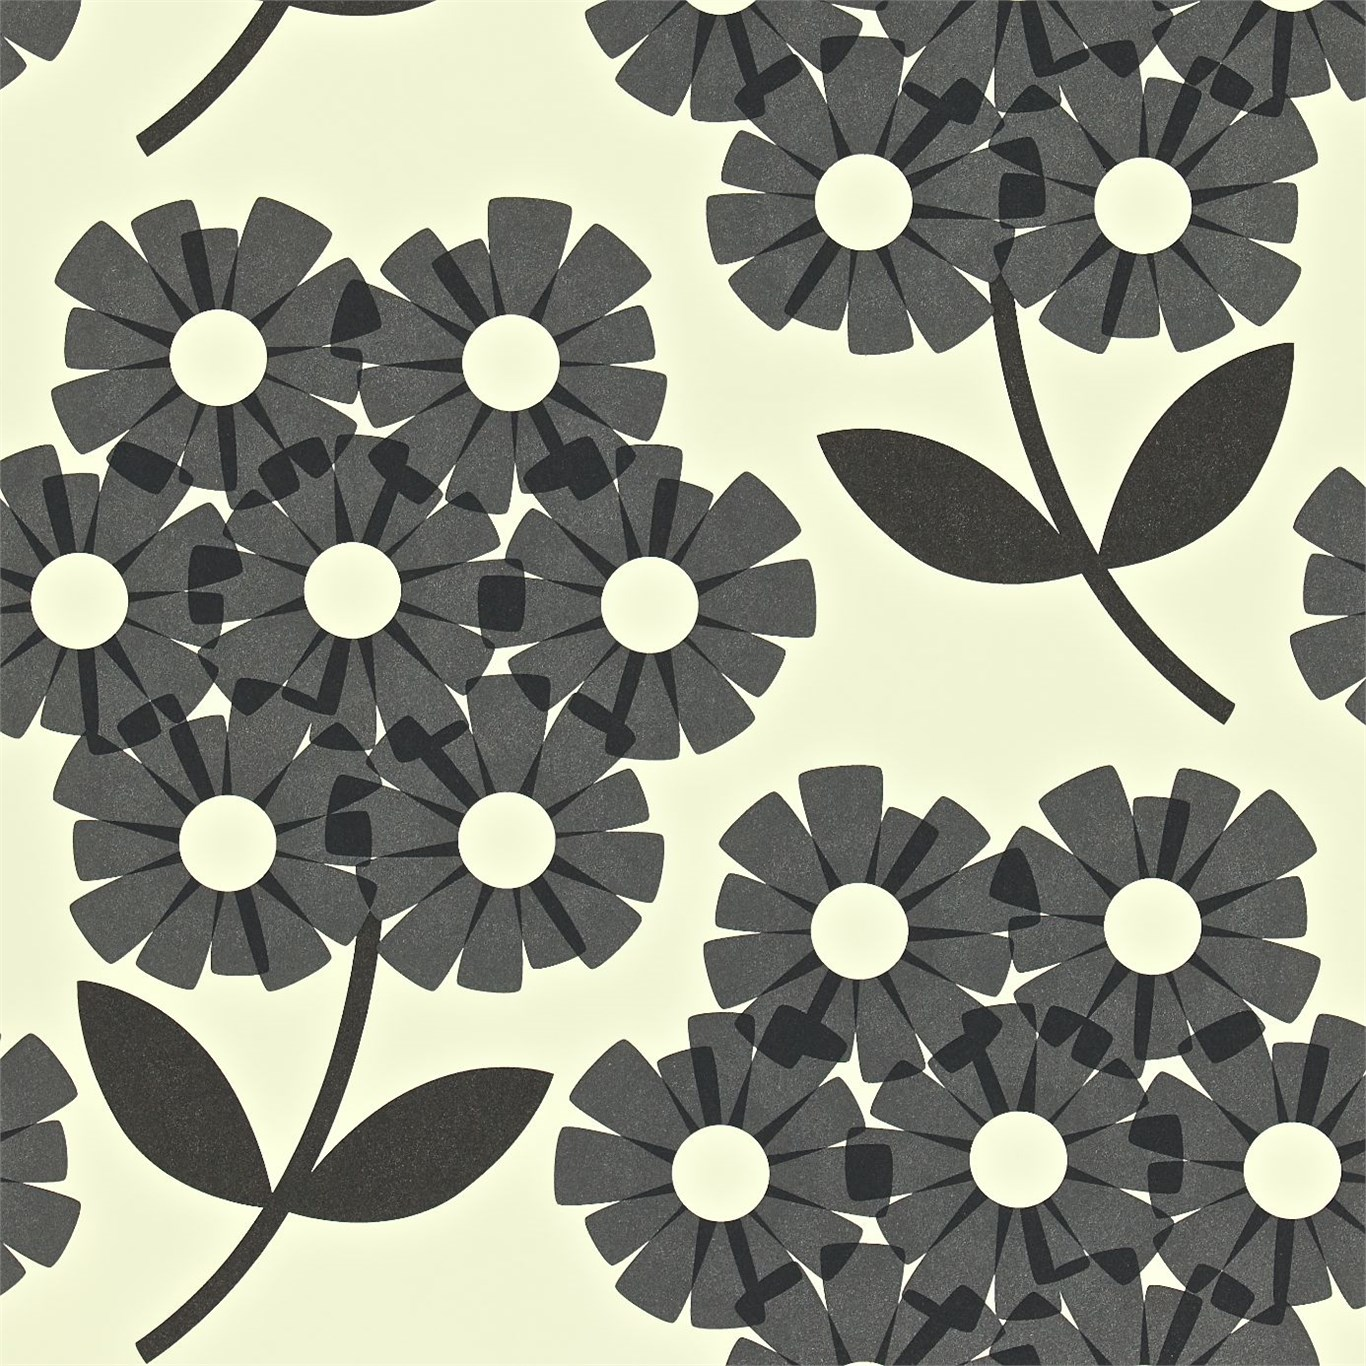 Poppenhuis Behang Orla Kiely - Giant Rhododendron Wallpaper